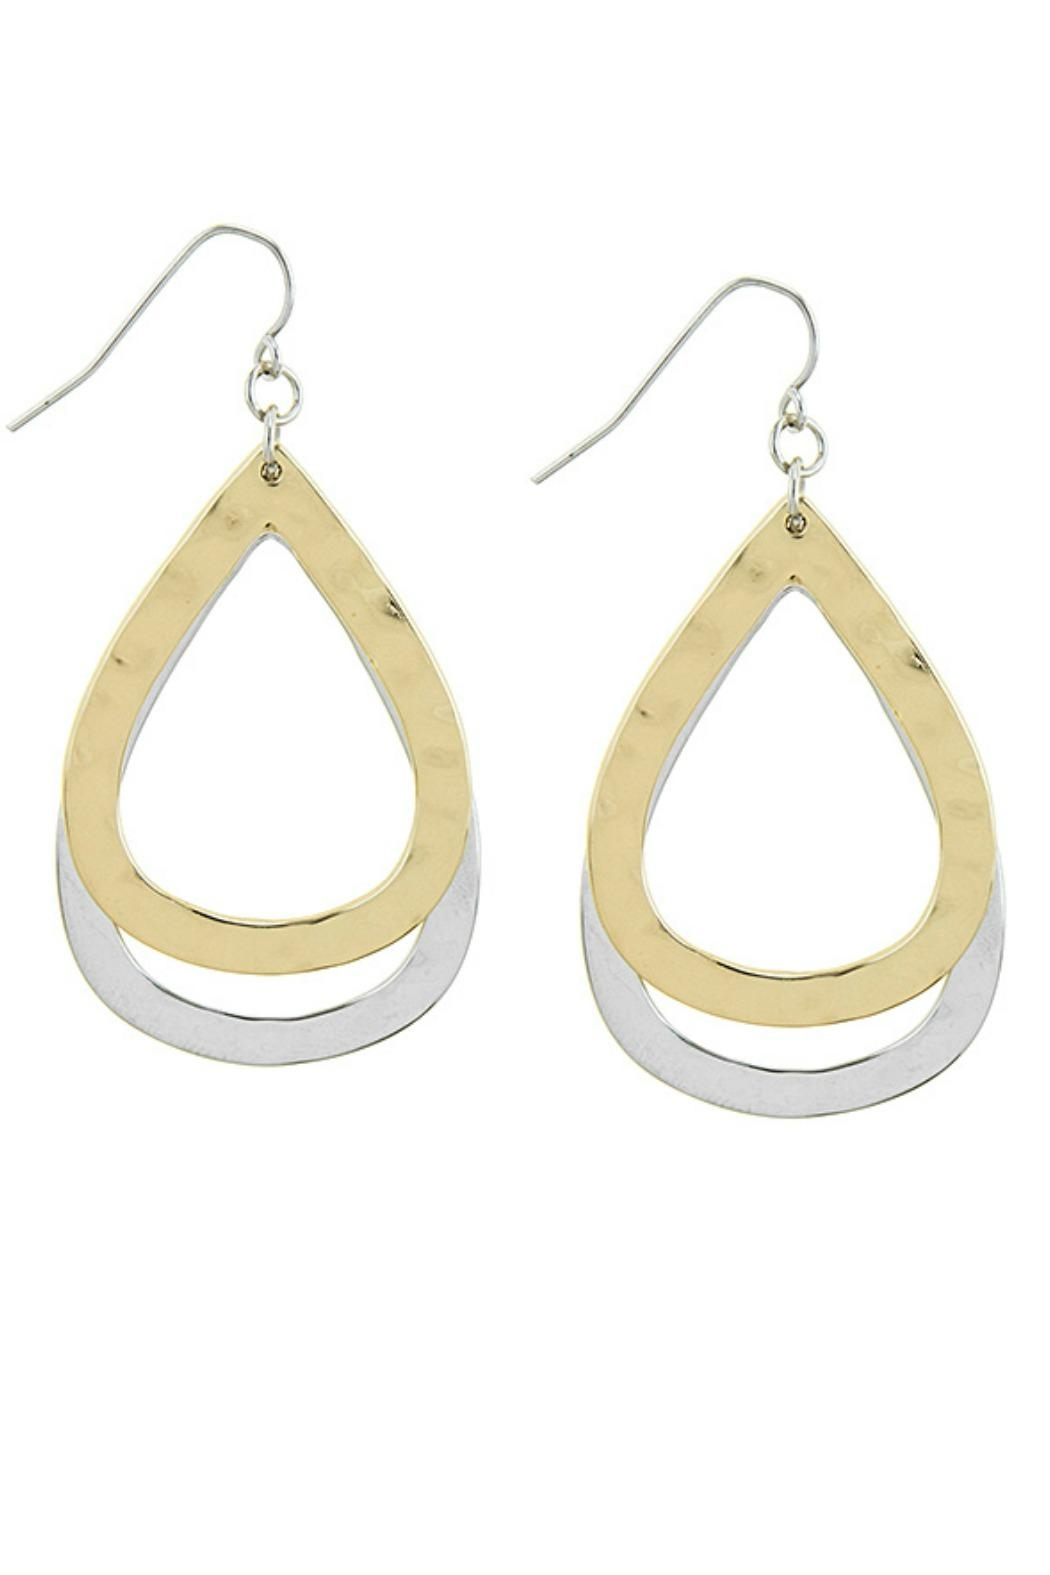 AL Boutique Hammered Teardrop Earrings - Main Image